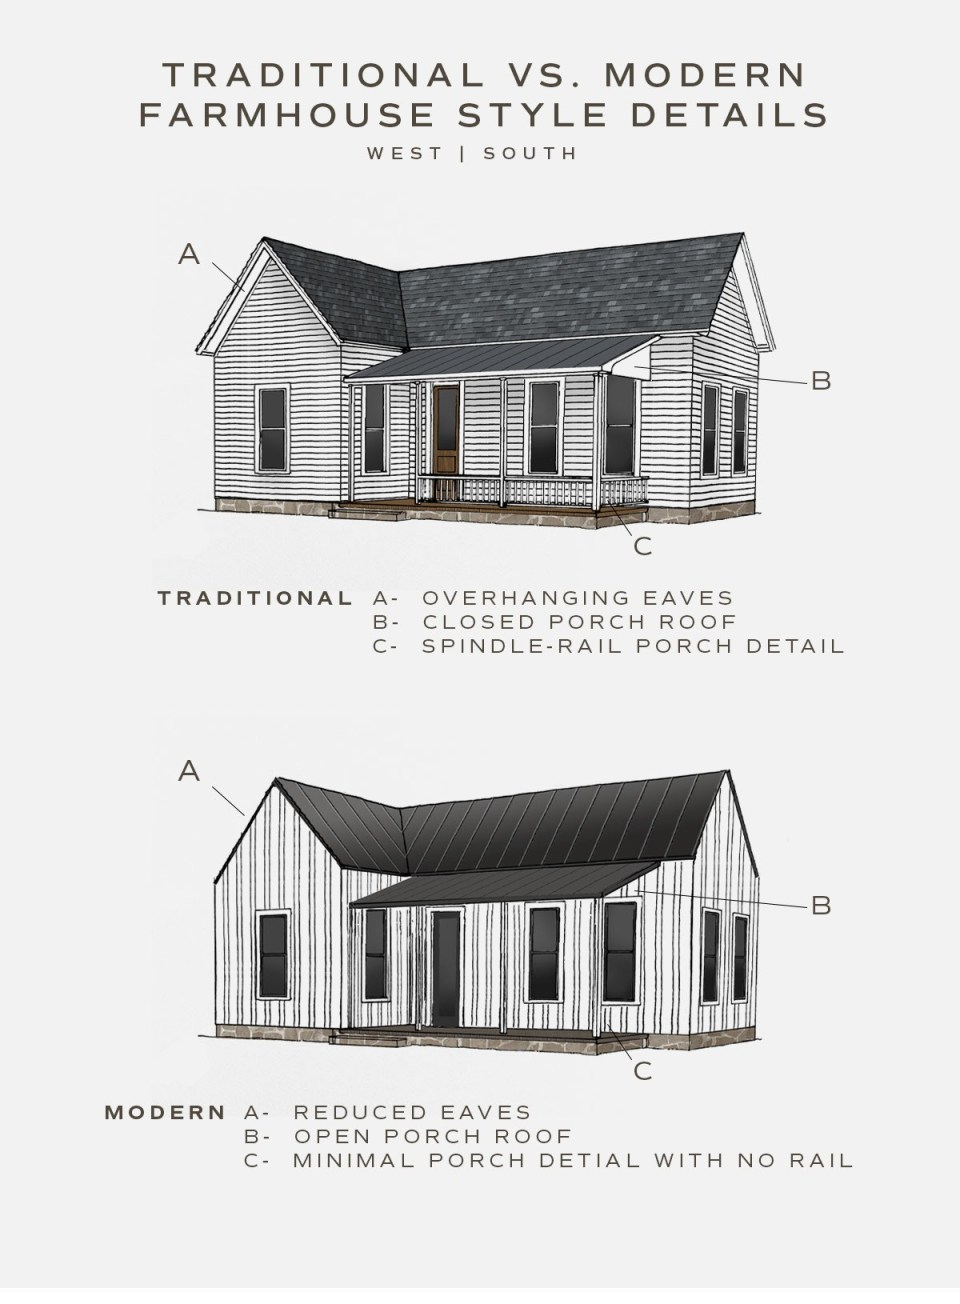 illustration showing the differenced between traditional and modern farmhouse exterior style